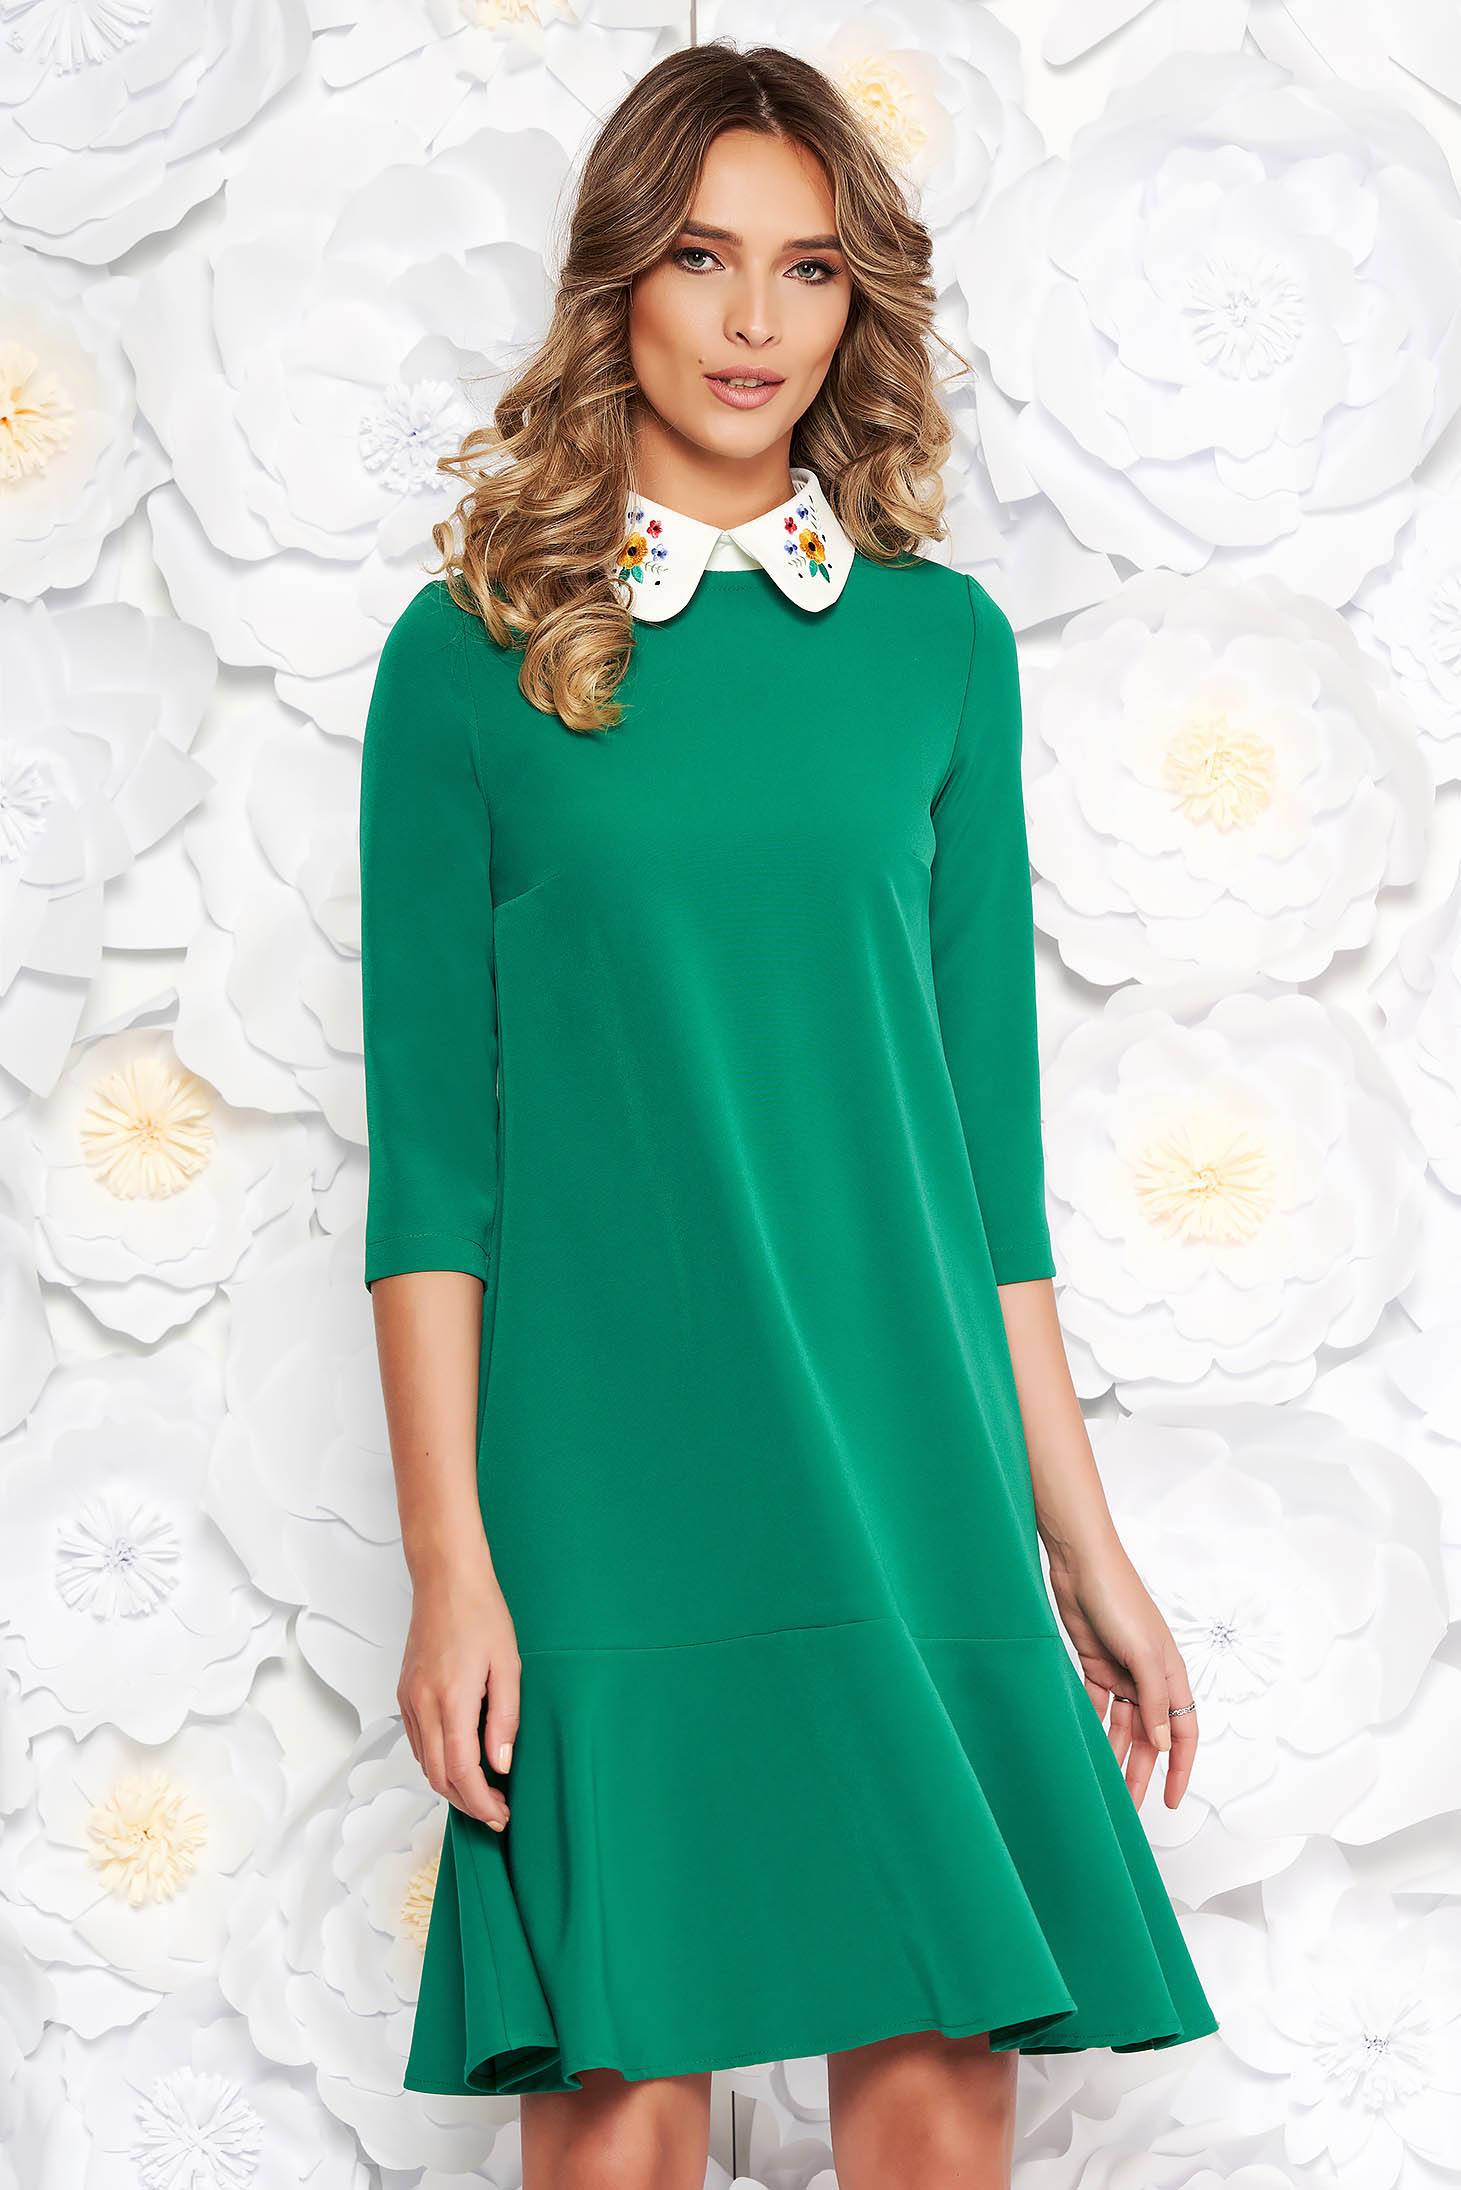 StarShinerS green elegant flared dress slightly elastic fabric with round collar embroidered